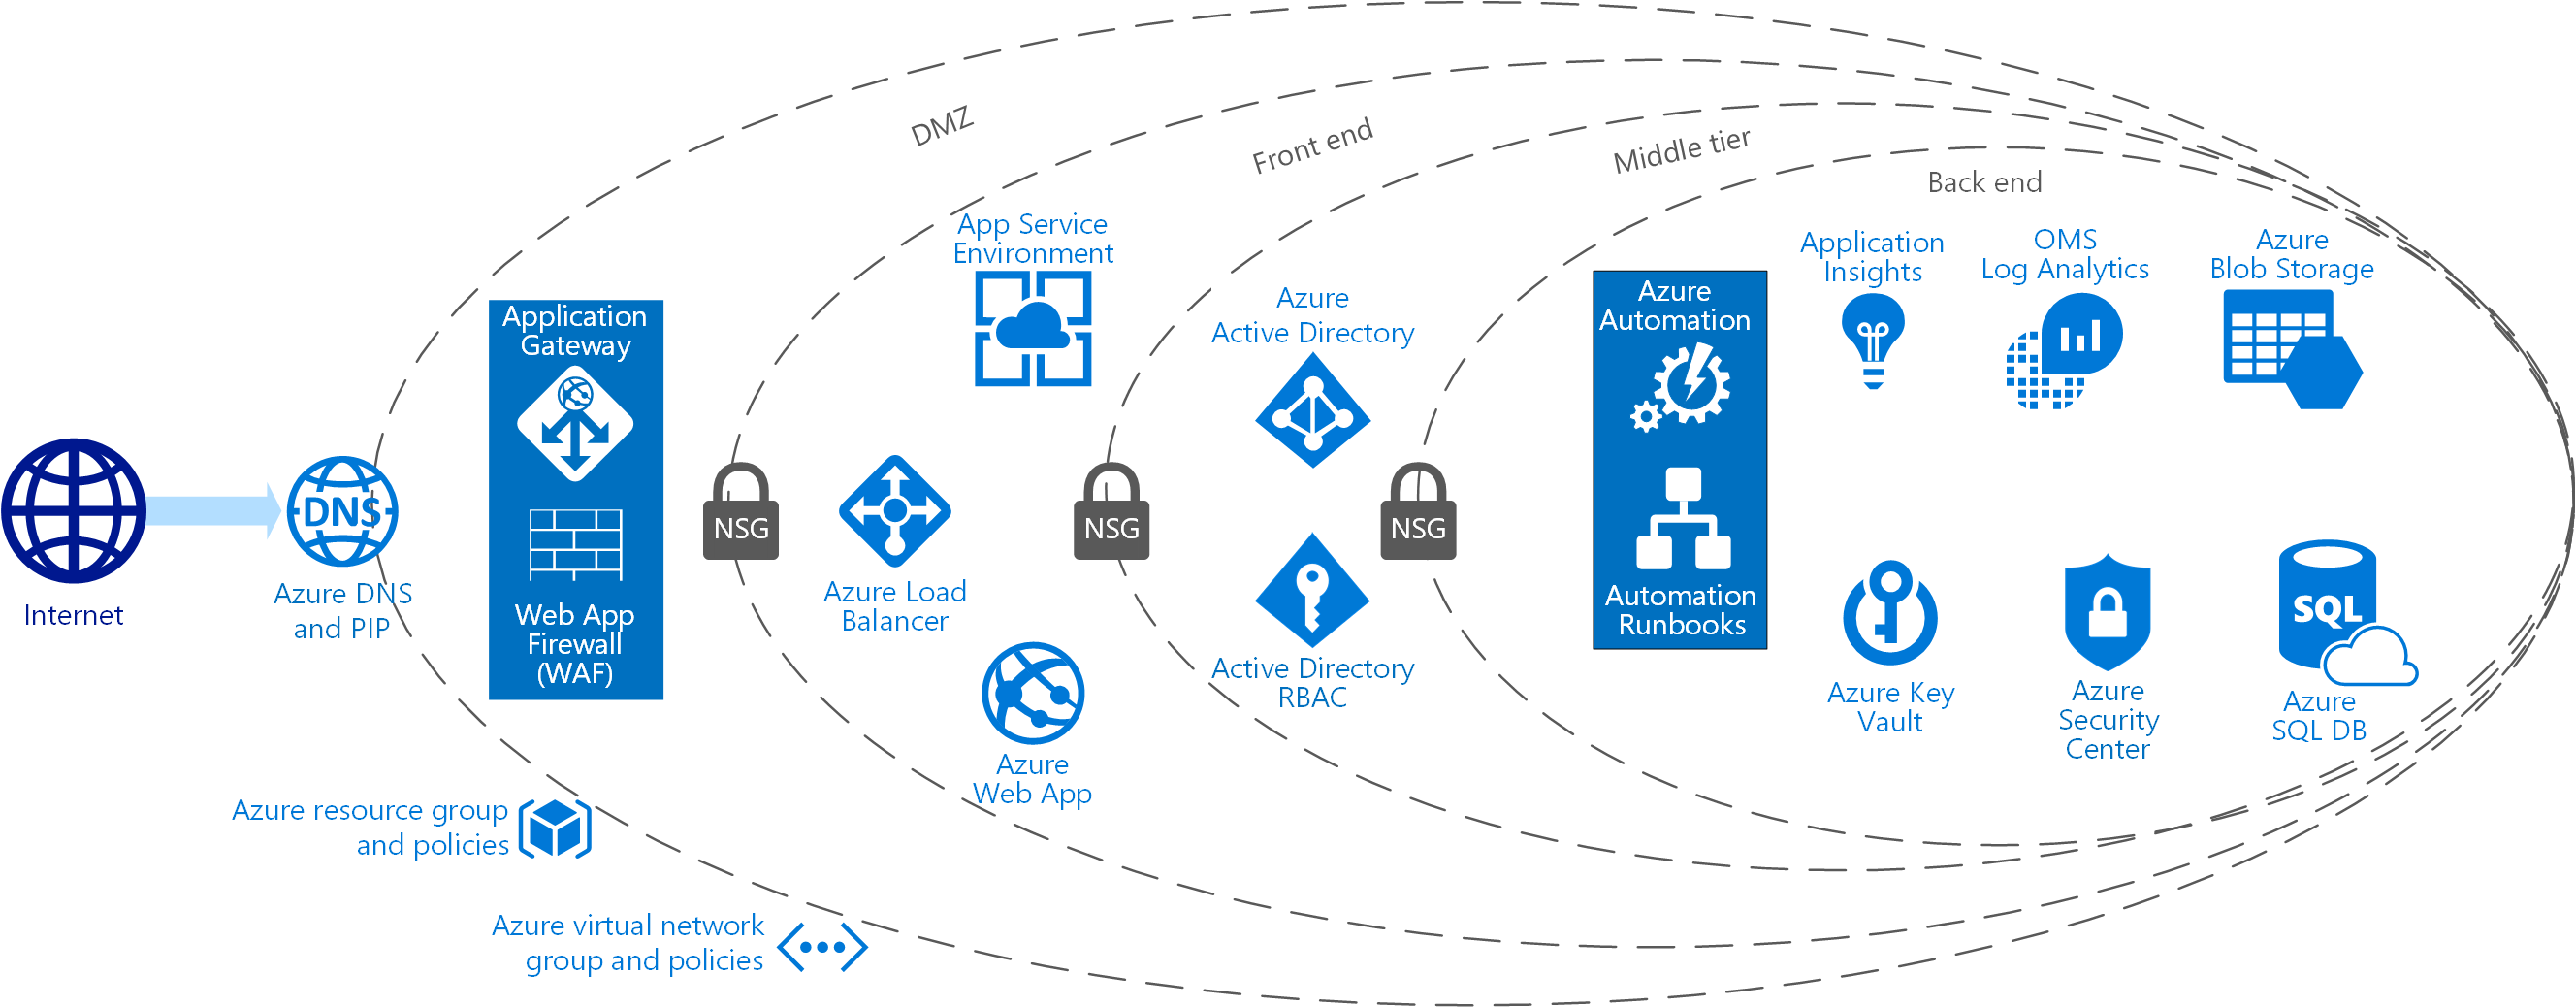 Azure security and compliance blueprint ffiec financial services network segmentation and security malvernweather Image collections